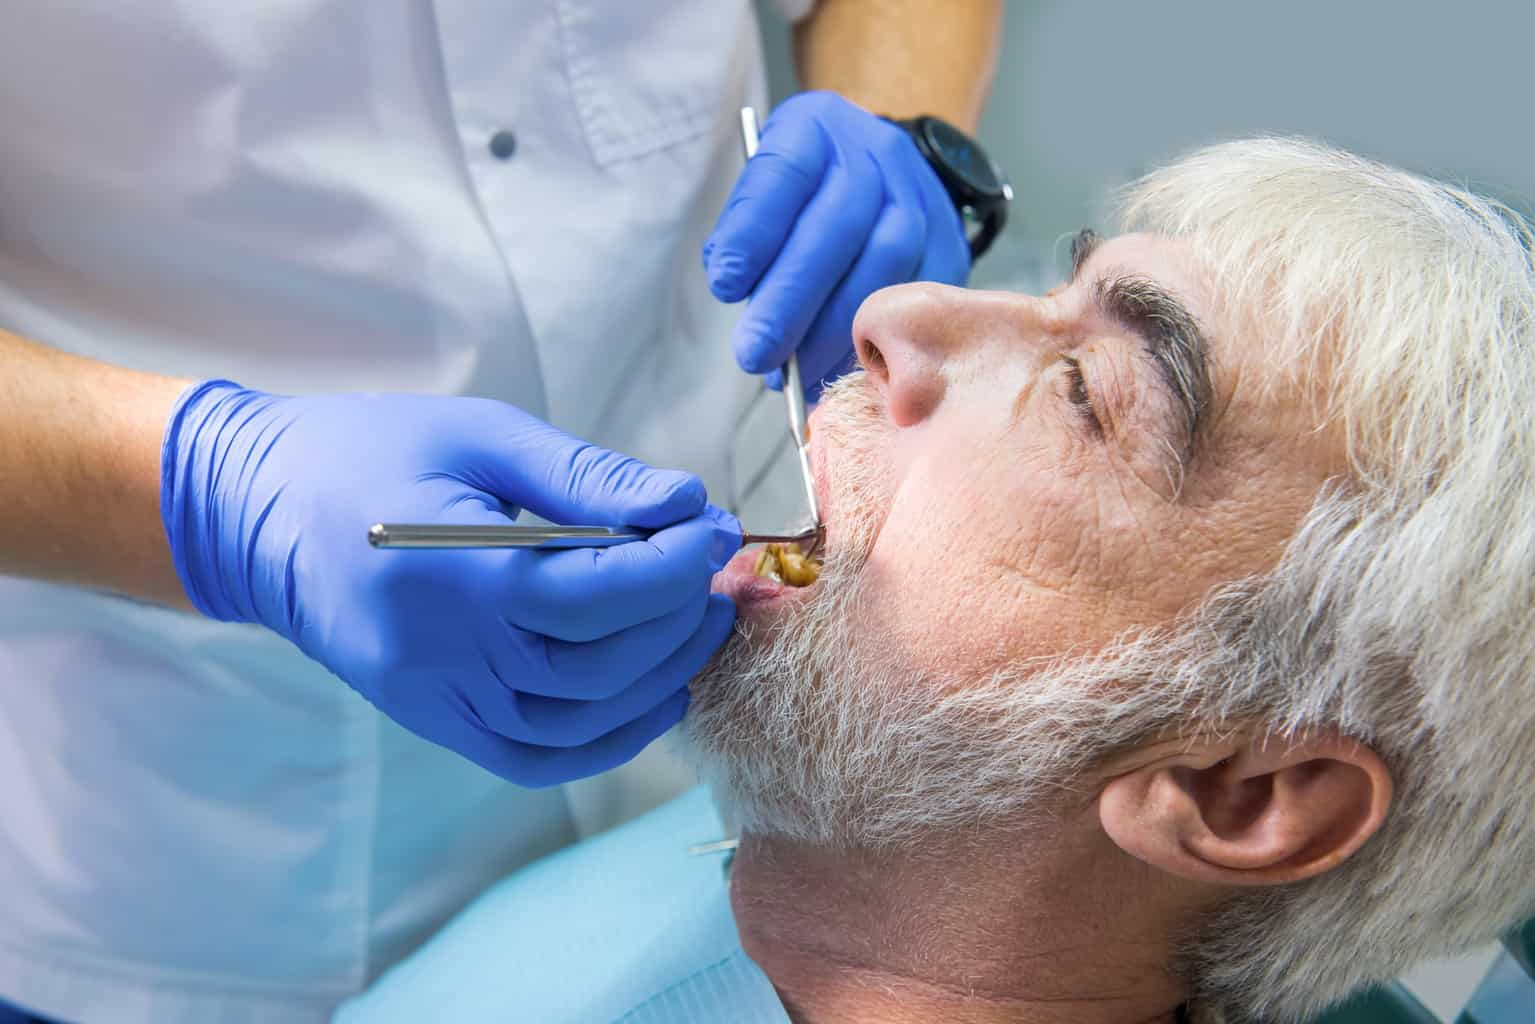 This dental procedure fixes blood pressure, diabetes and more?